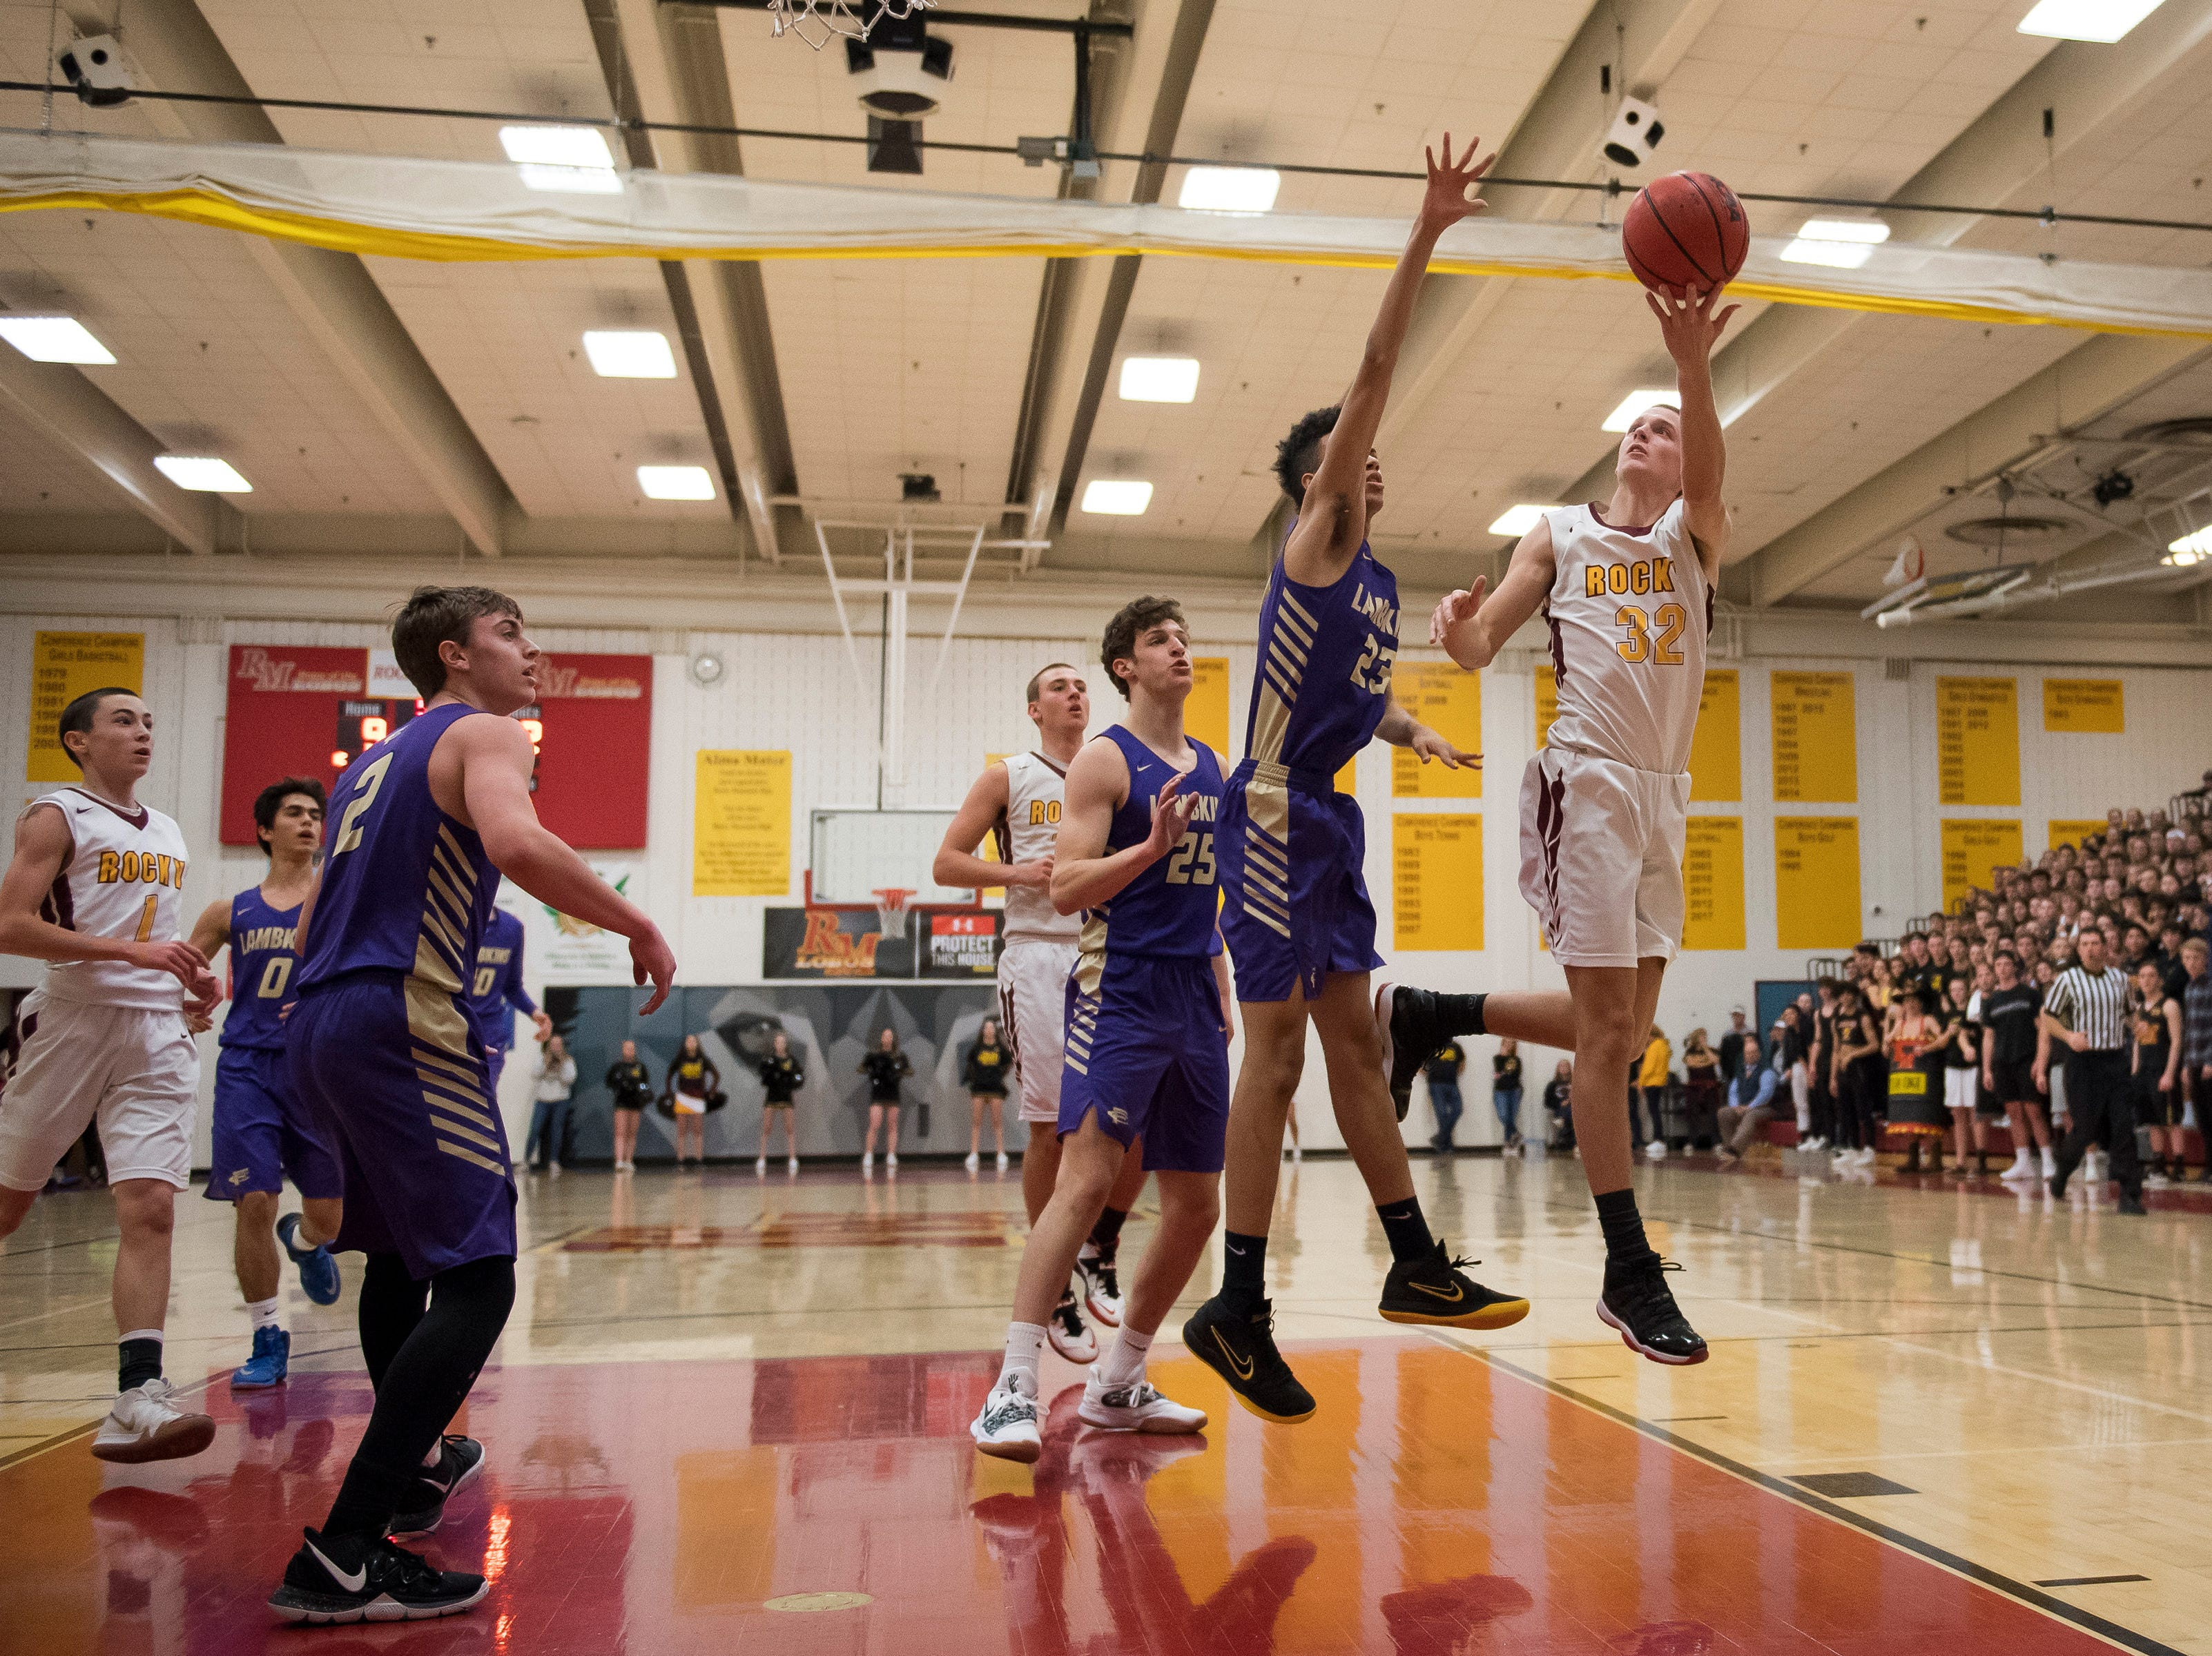 Rocky Mountain High School junior Kenan Schuler (32) puts a shot over Fort Collins High School sophomore Danté Smith (23) on Friday, Jan. 18, 2019, at Rocky Mountain High School in Fort Collins, Colo.